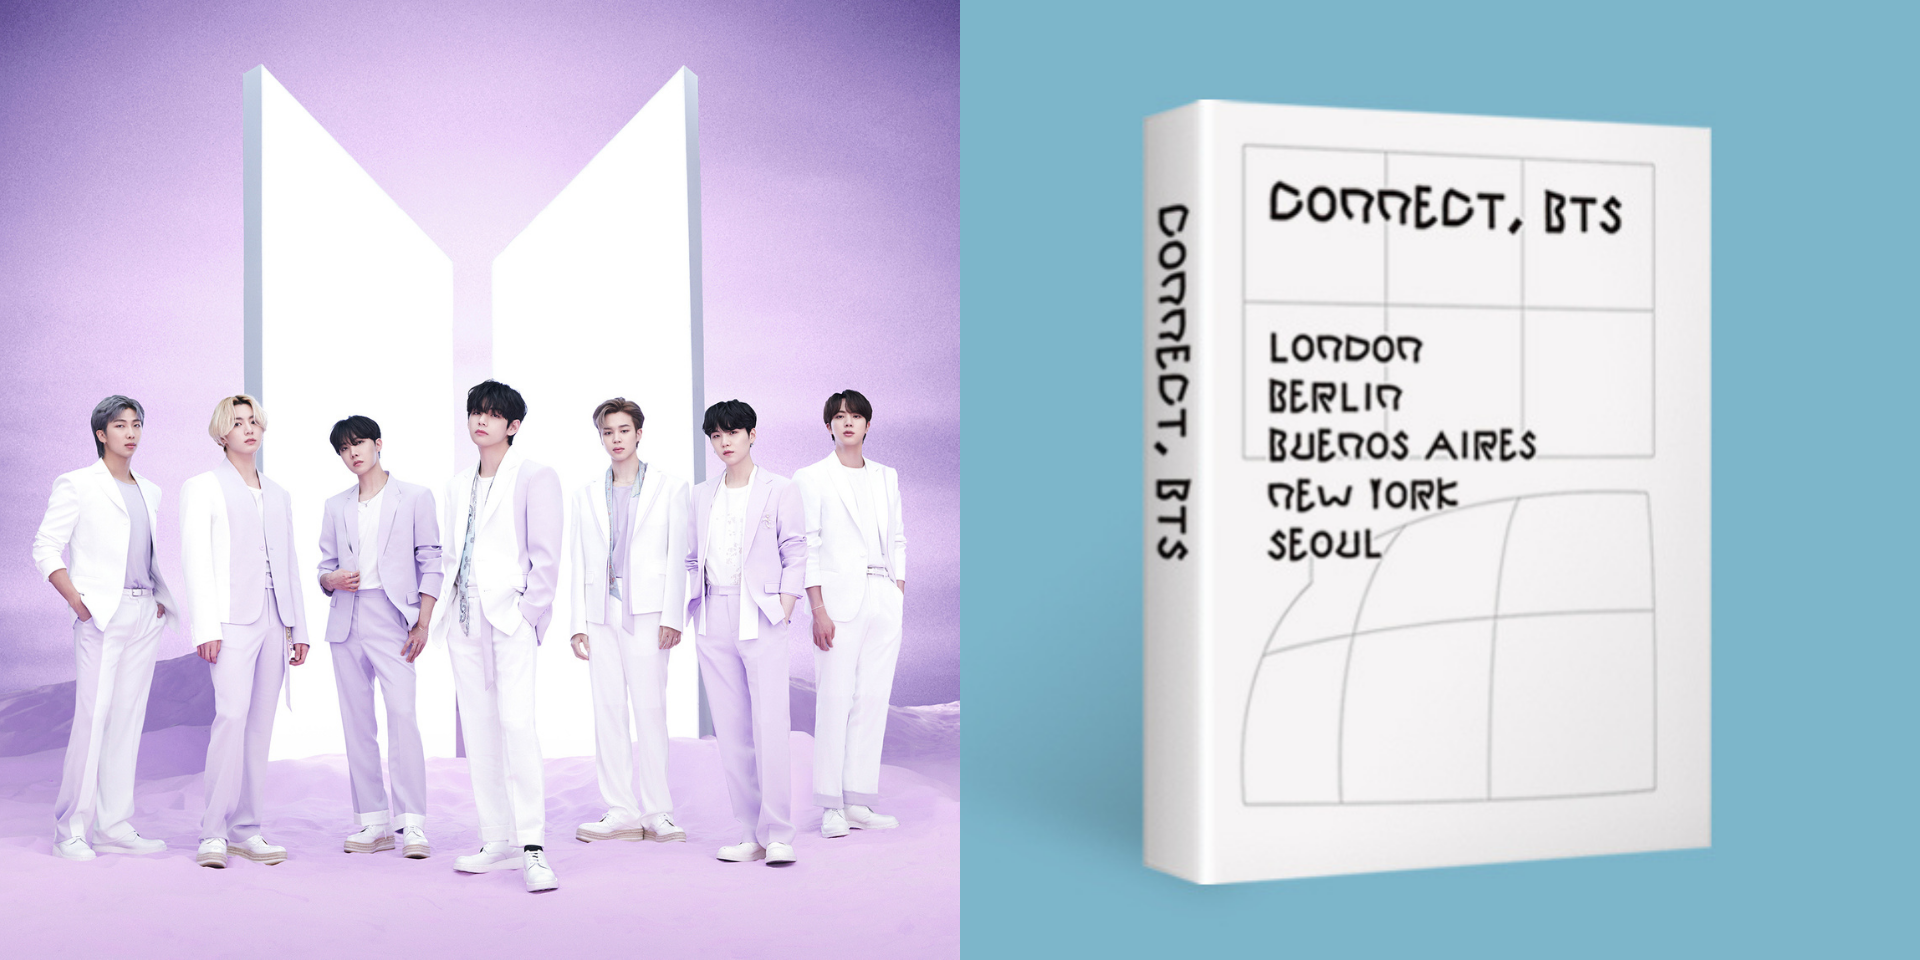 """BTS release free e-book and font for global 'CONNECT, BTS' art project: """"Diversity can create a world where differences can CONNECT us together."""""""